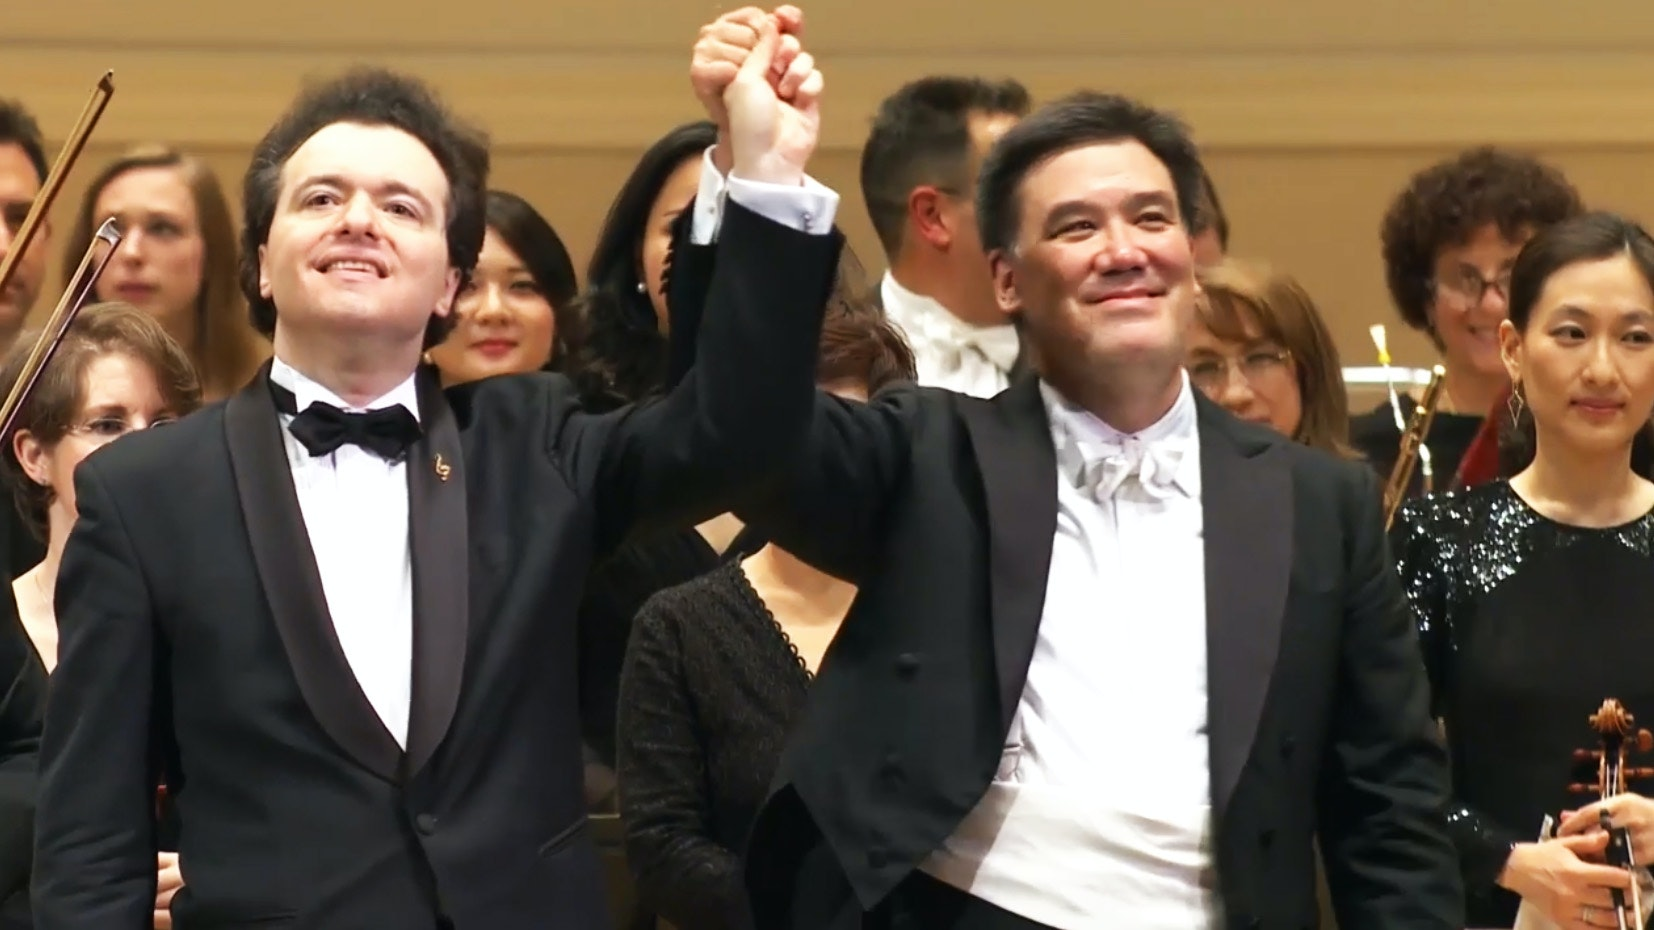 Alan Gilbert conducts Tchaikovsky, Lindberg and Ravel with the New York Philharmonic and Evgeny Kissin